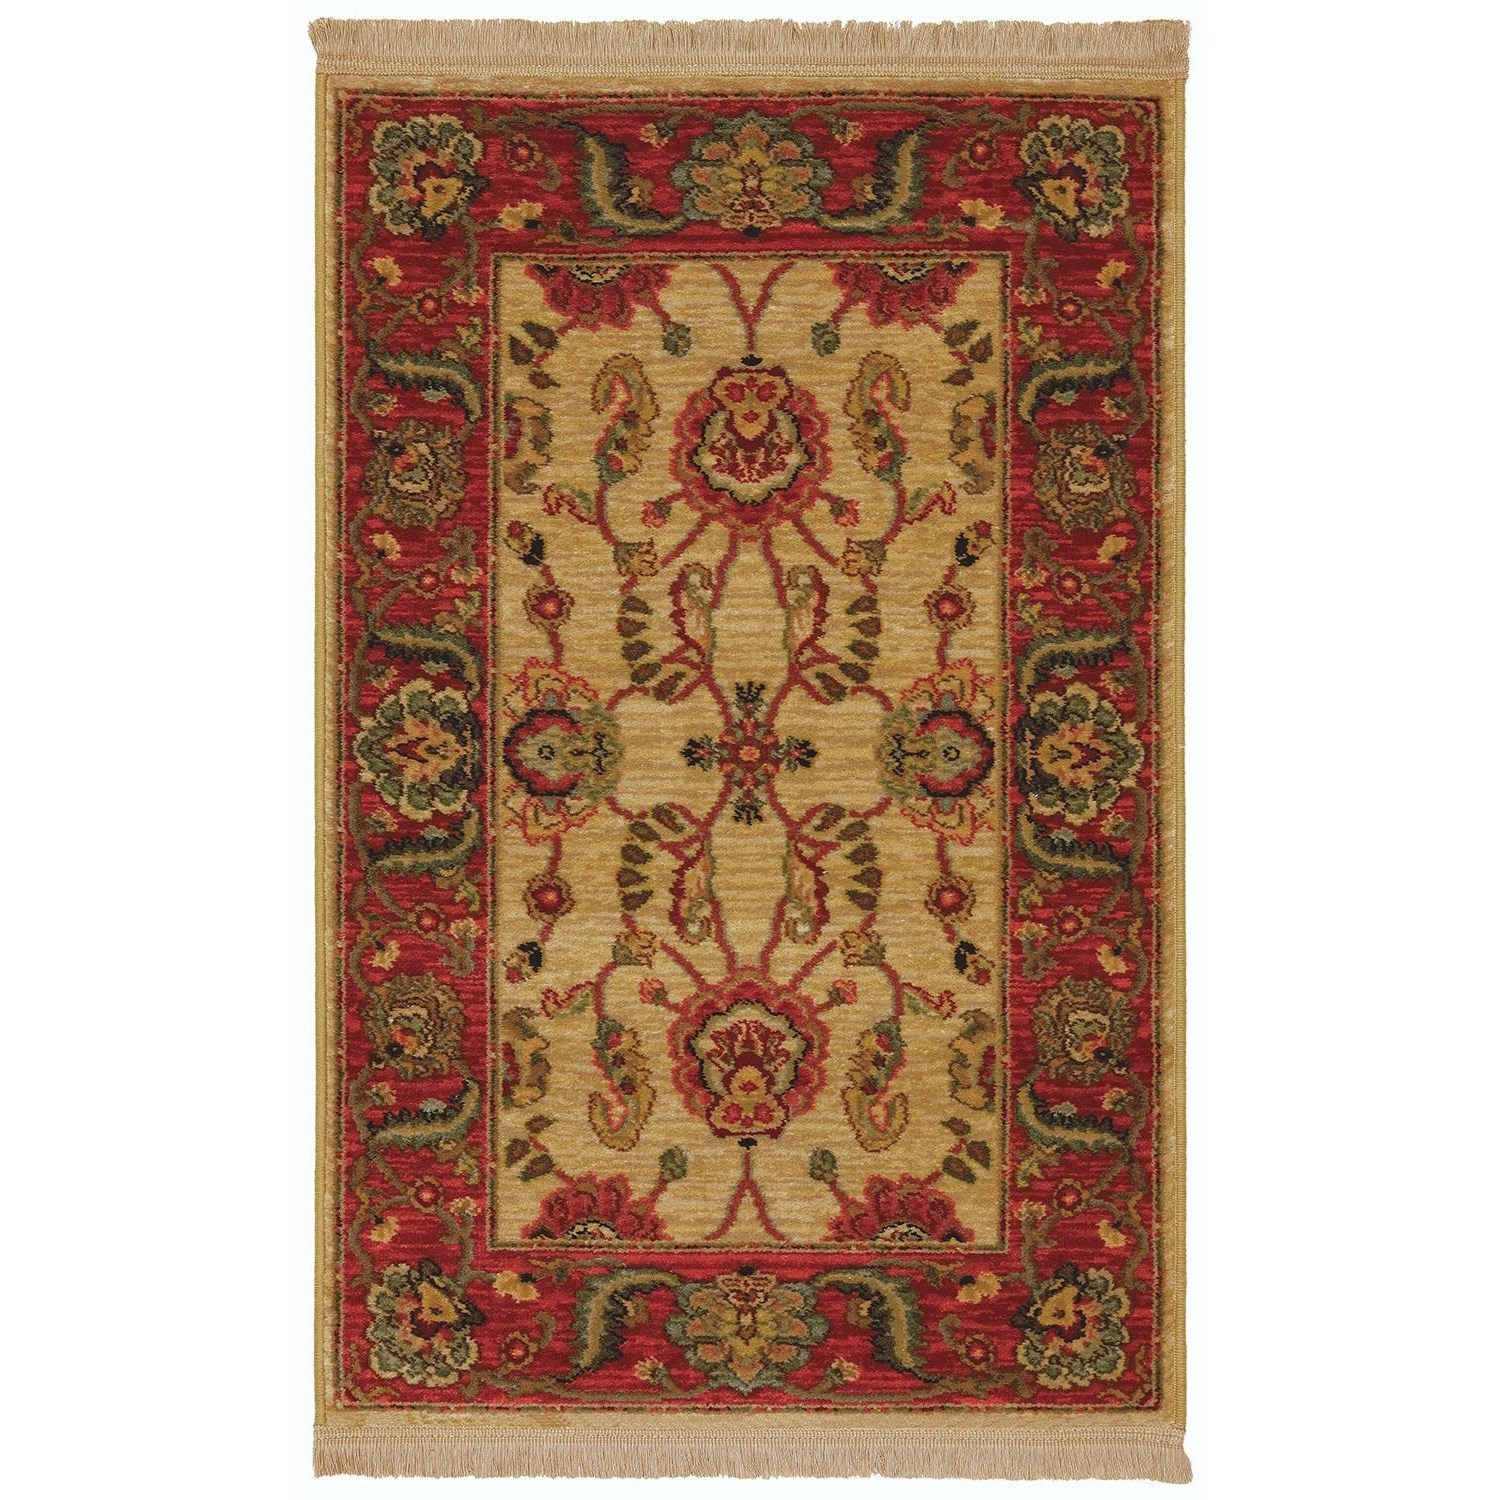 Ashara 5'9x9' Agra Ivory Rug by Karastan Rugs at Alison Craig Home Furnishings